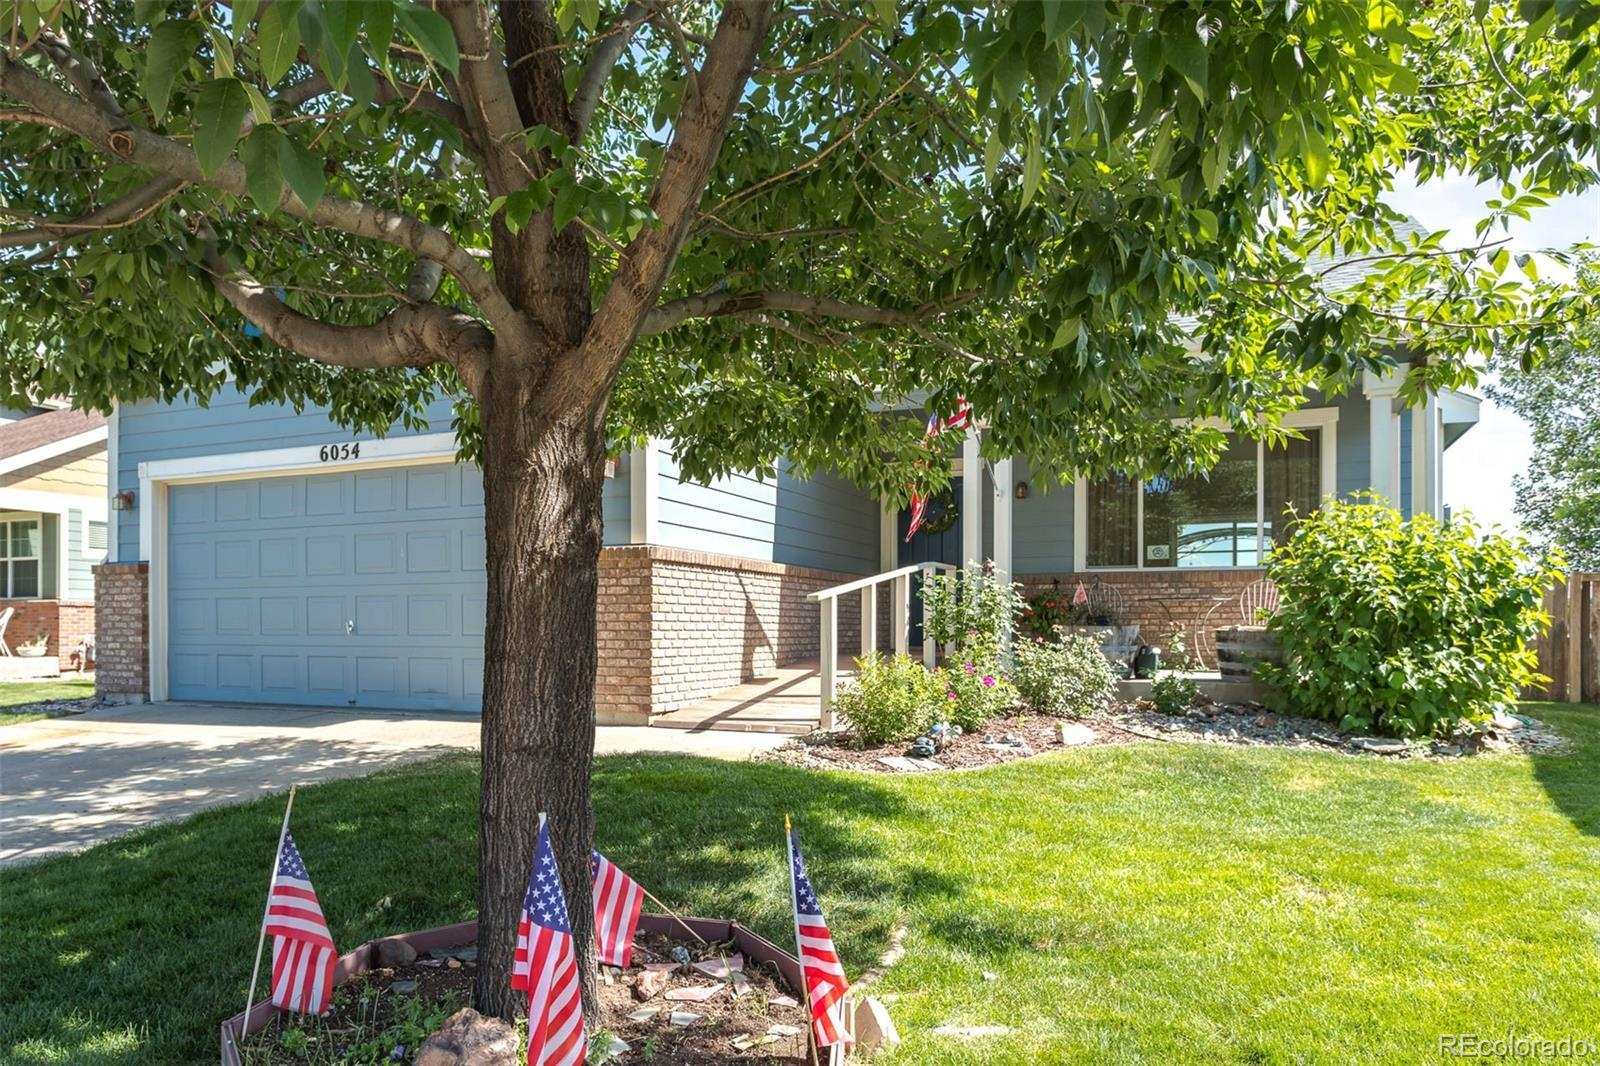 6054 Ulysses Avenue, Firestone, CO 80504 - #: 5714138